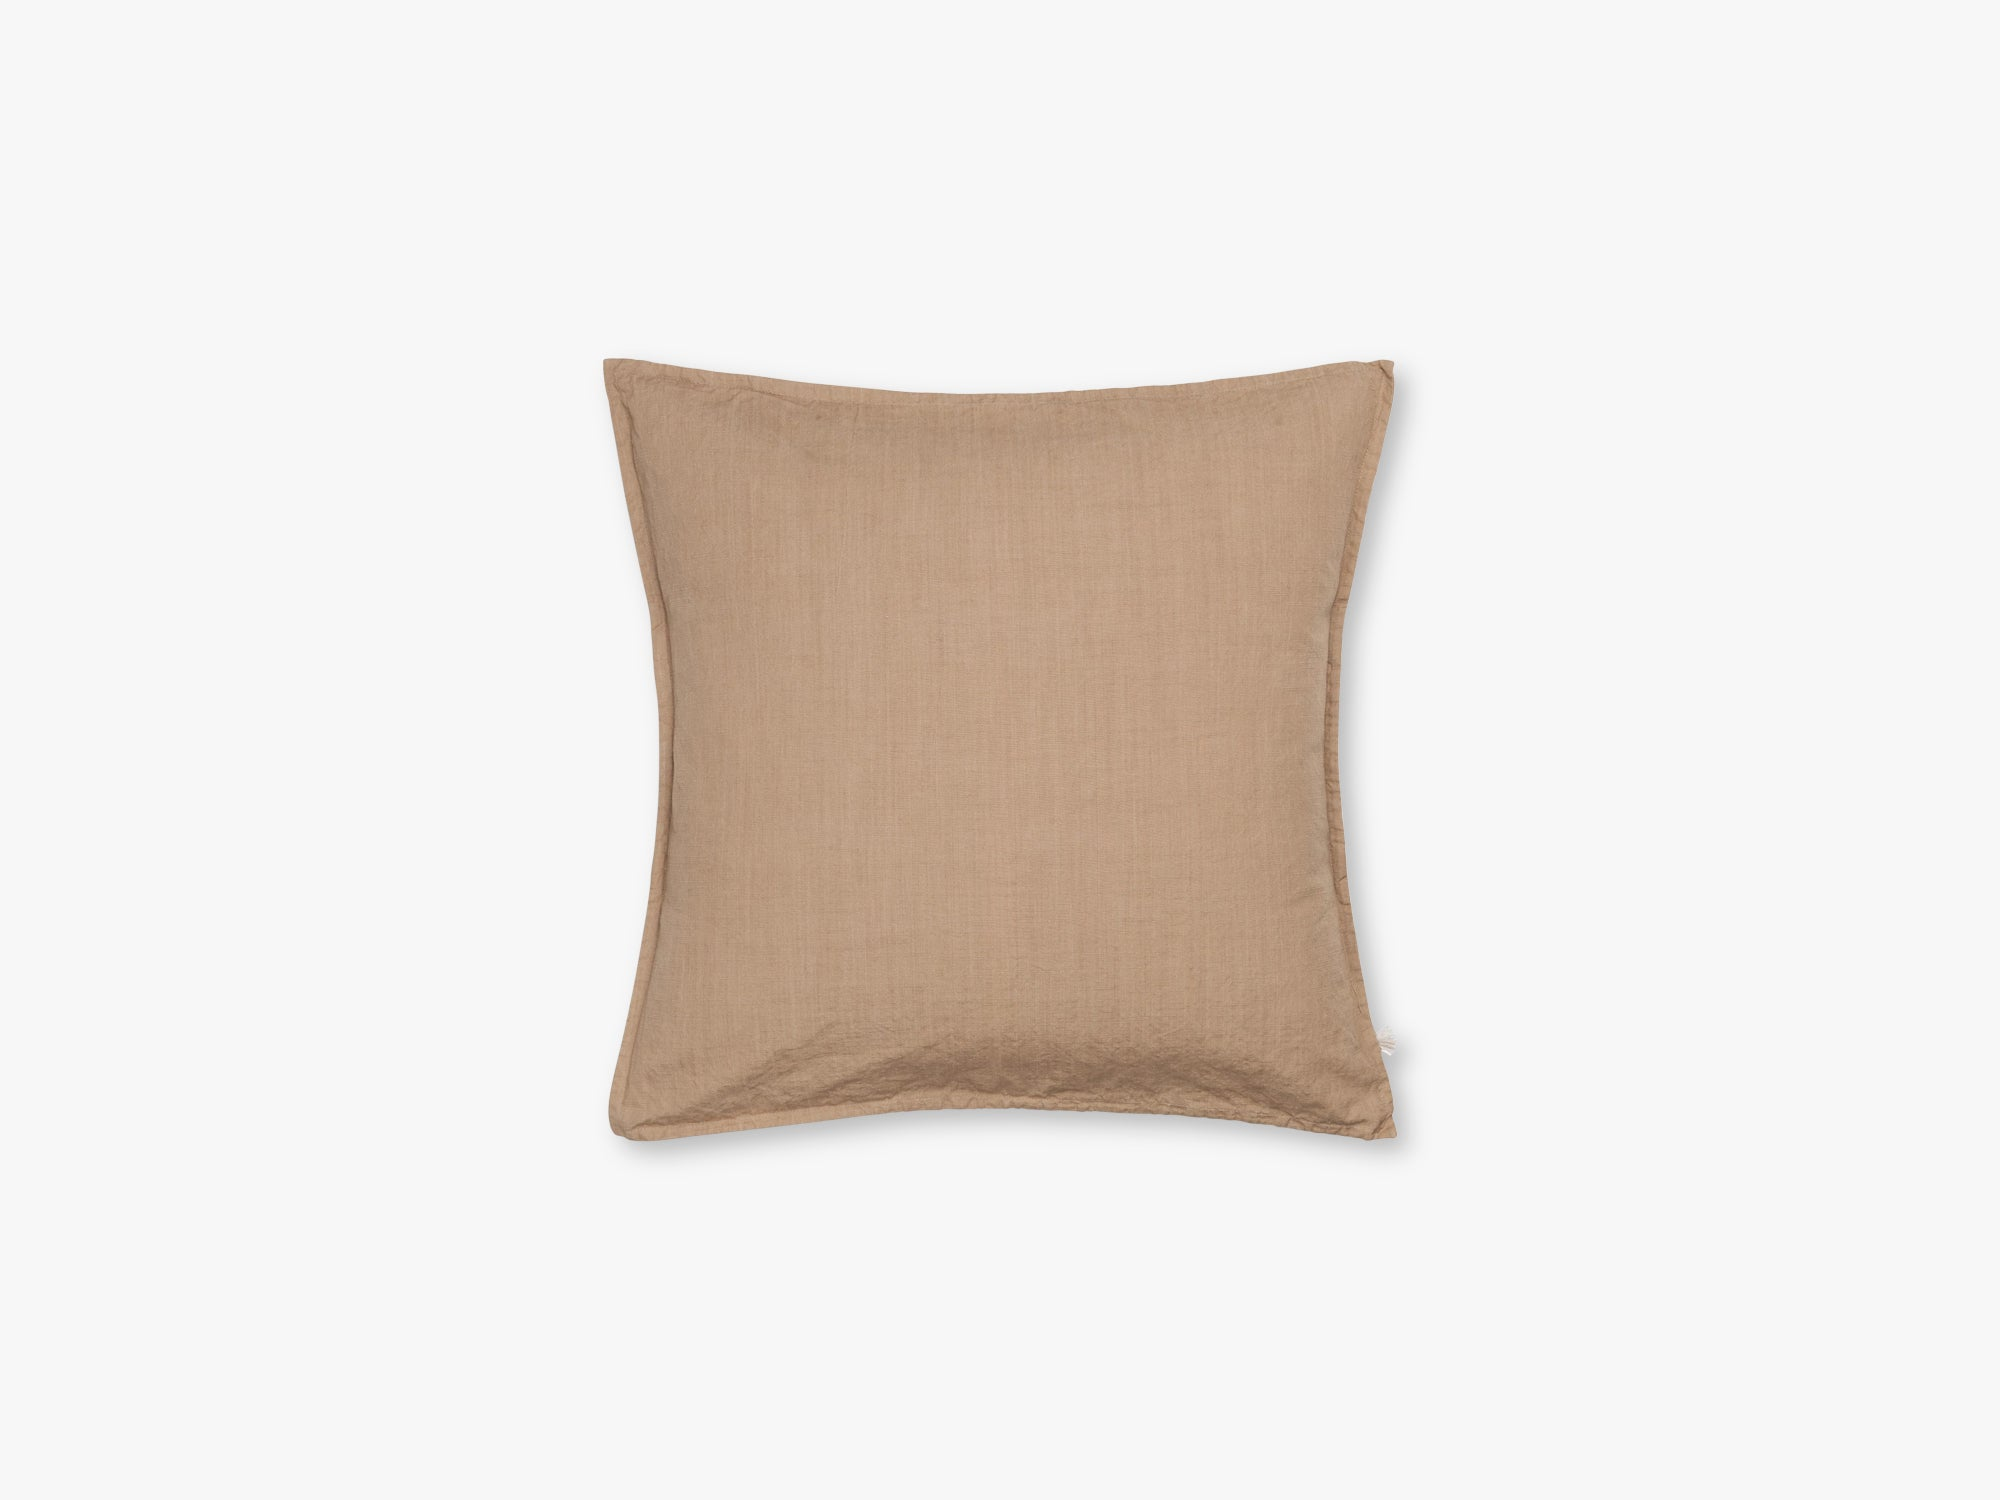 Pillow Cotton Slub 50x50, Light Tabacco fra Aiayu